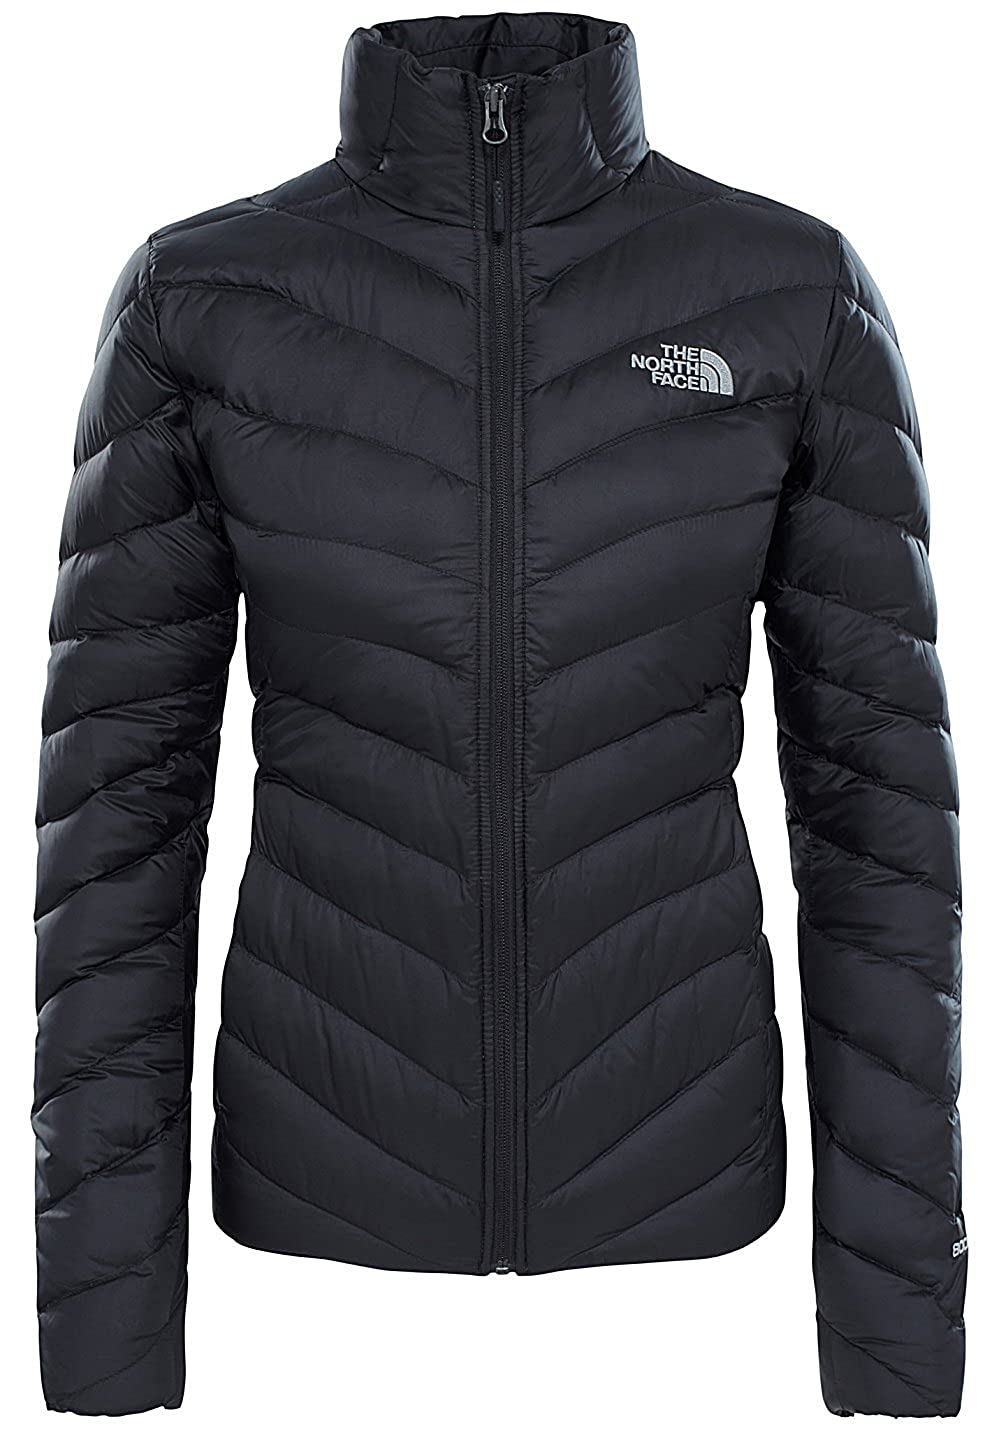 TALLA M. The North Face Jacket Chaqueta Trevail, Mujer